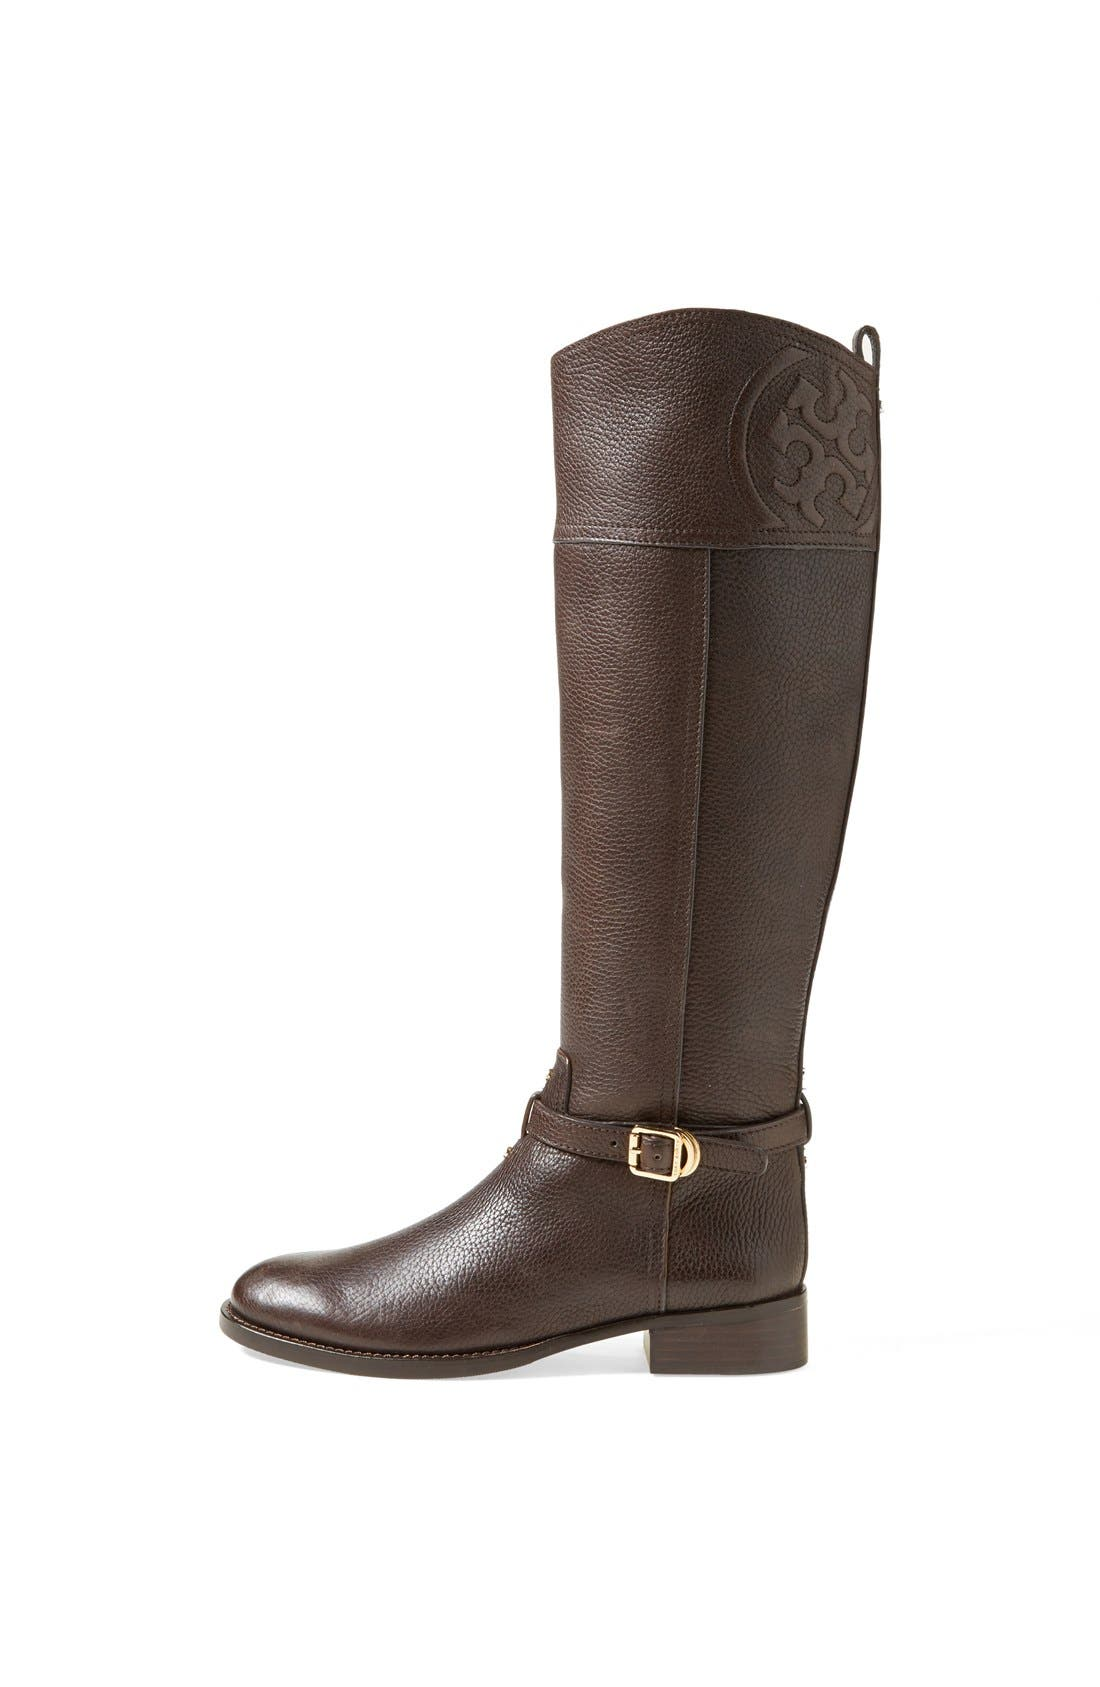 Alternate Image 4  - Tory Burch 'Marlene' Leather Riding Boot